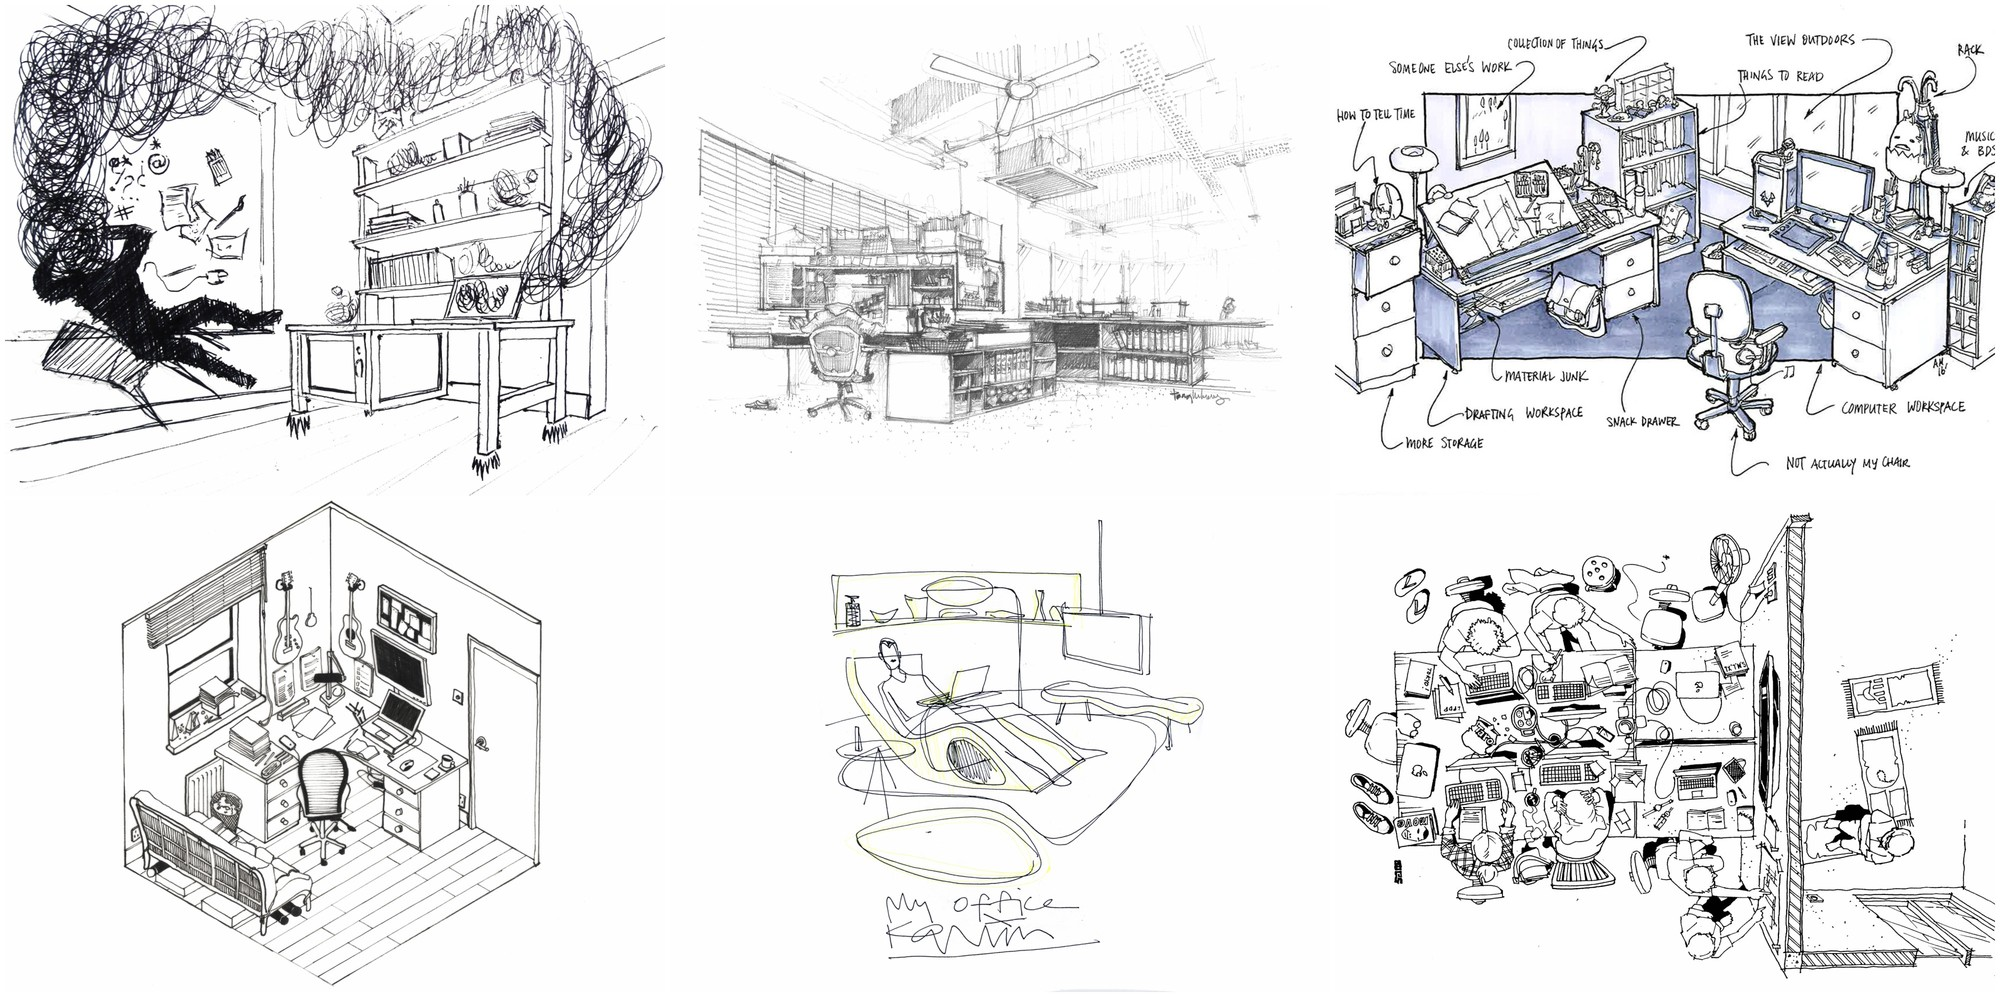 42 Sketches, Drawings and Diagrams of Desks and